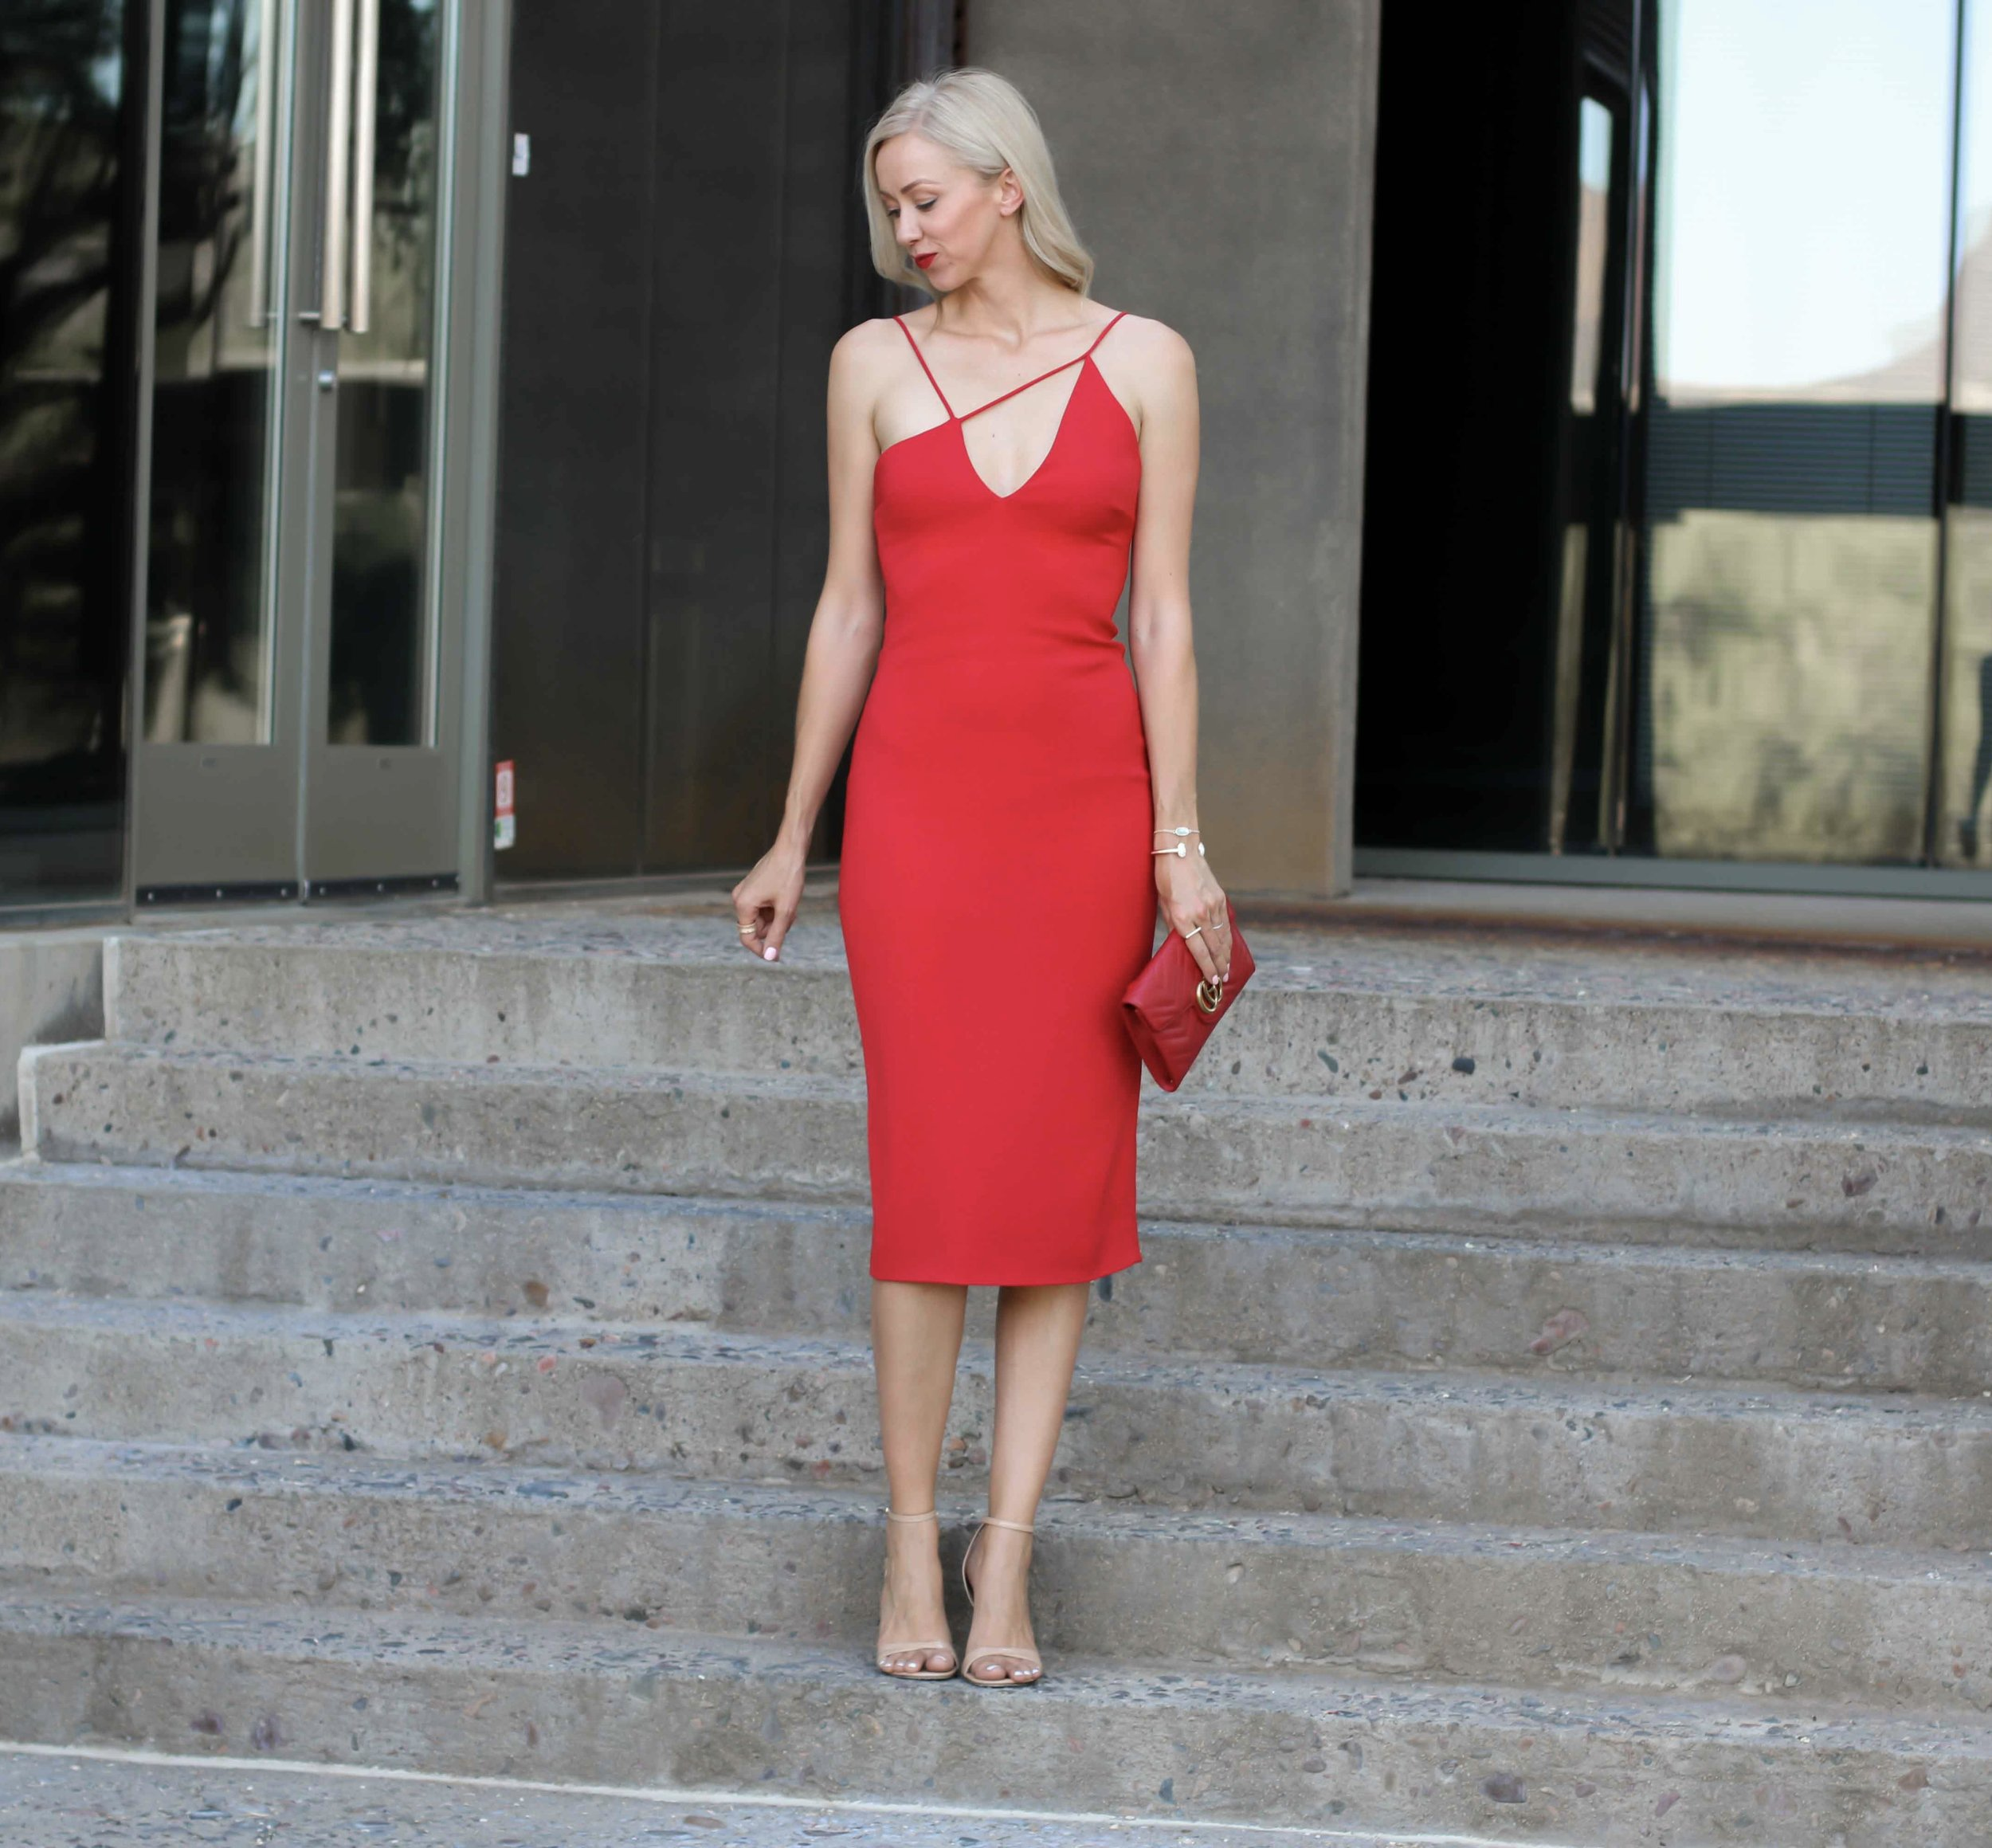 d0ec65c8da3d CUSHNIE DROPSALE BY RECLEAU — With Love and Style